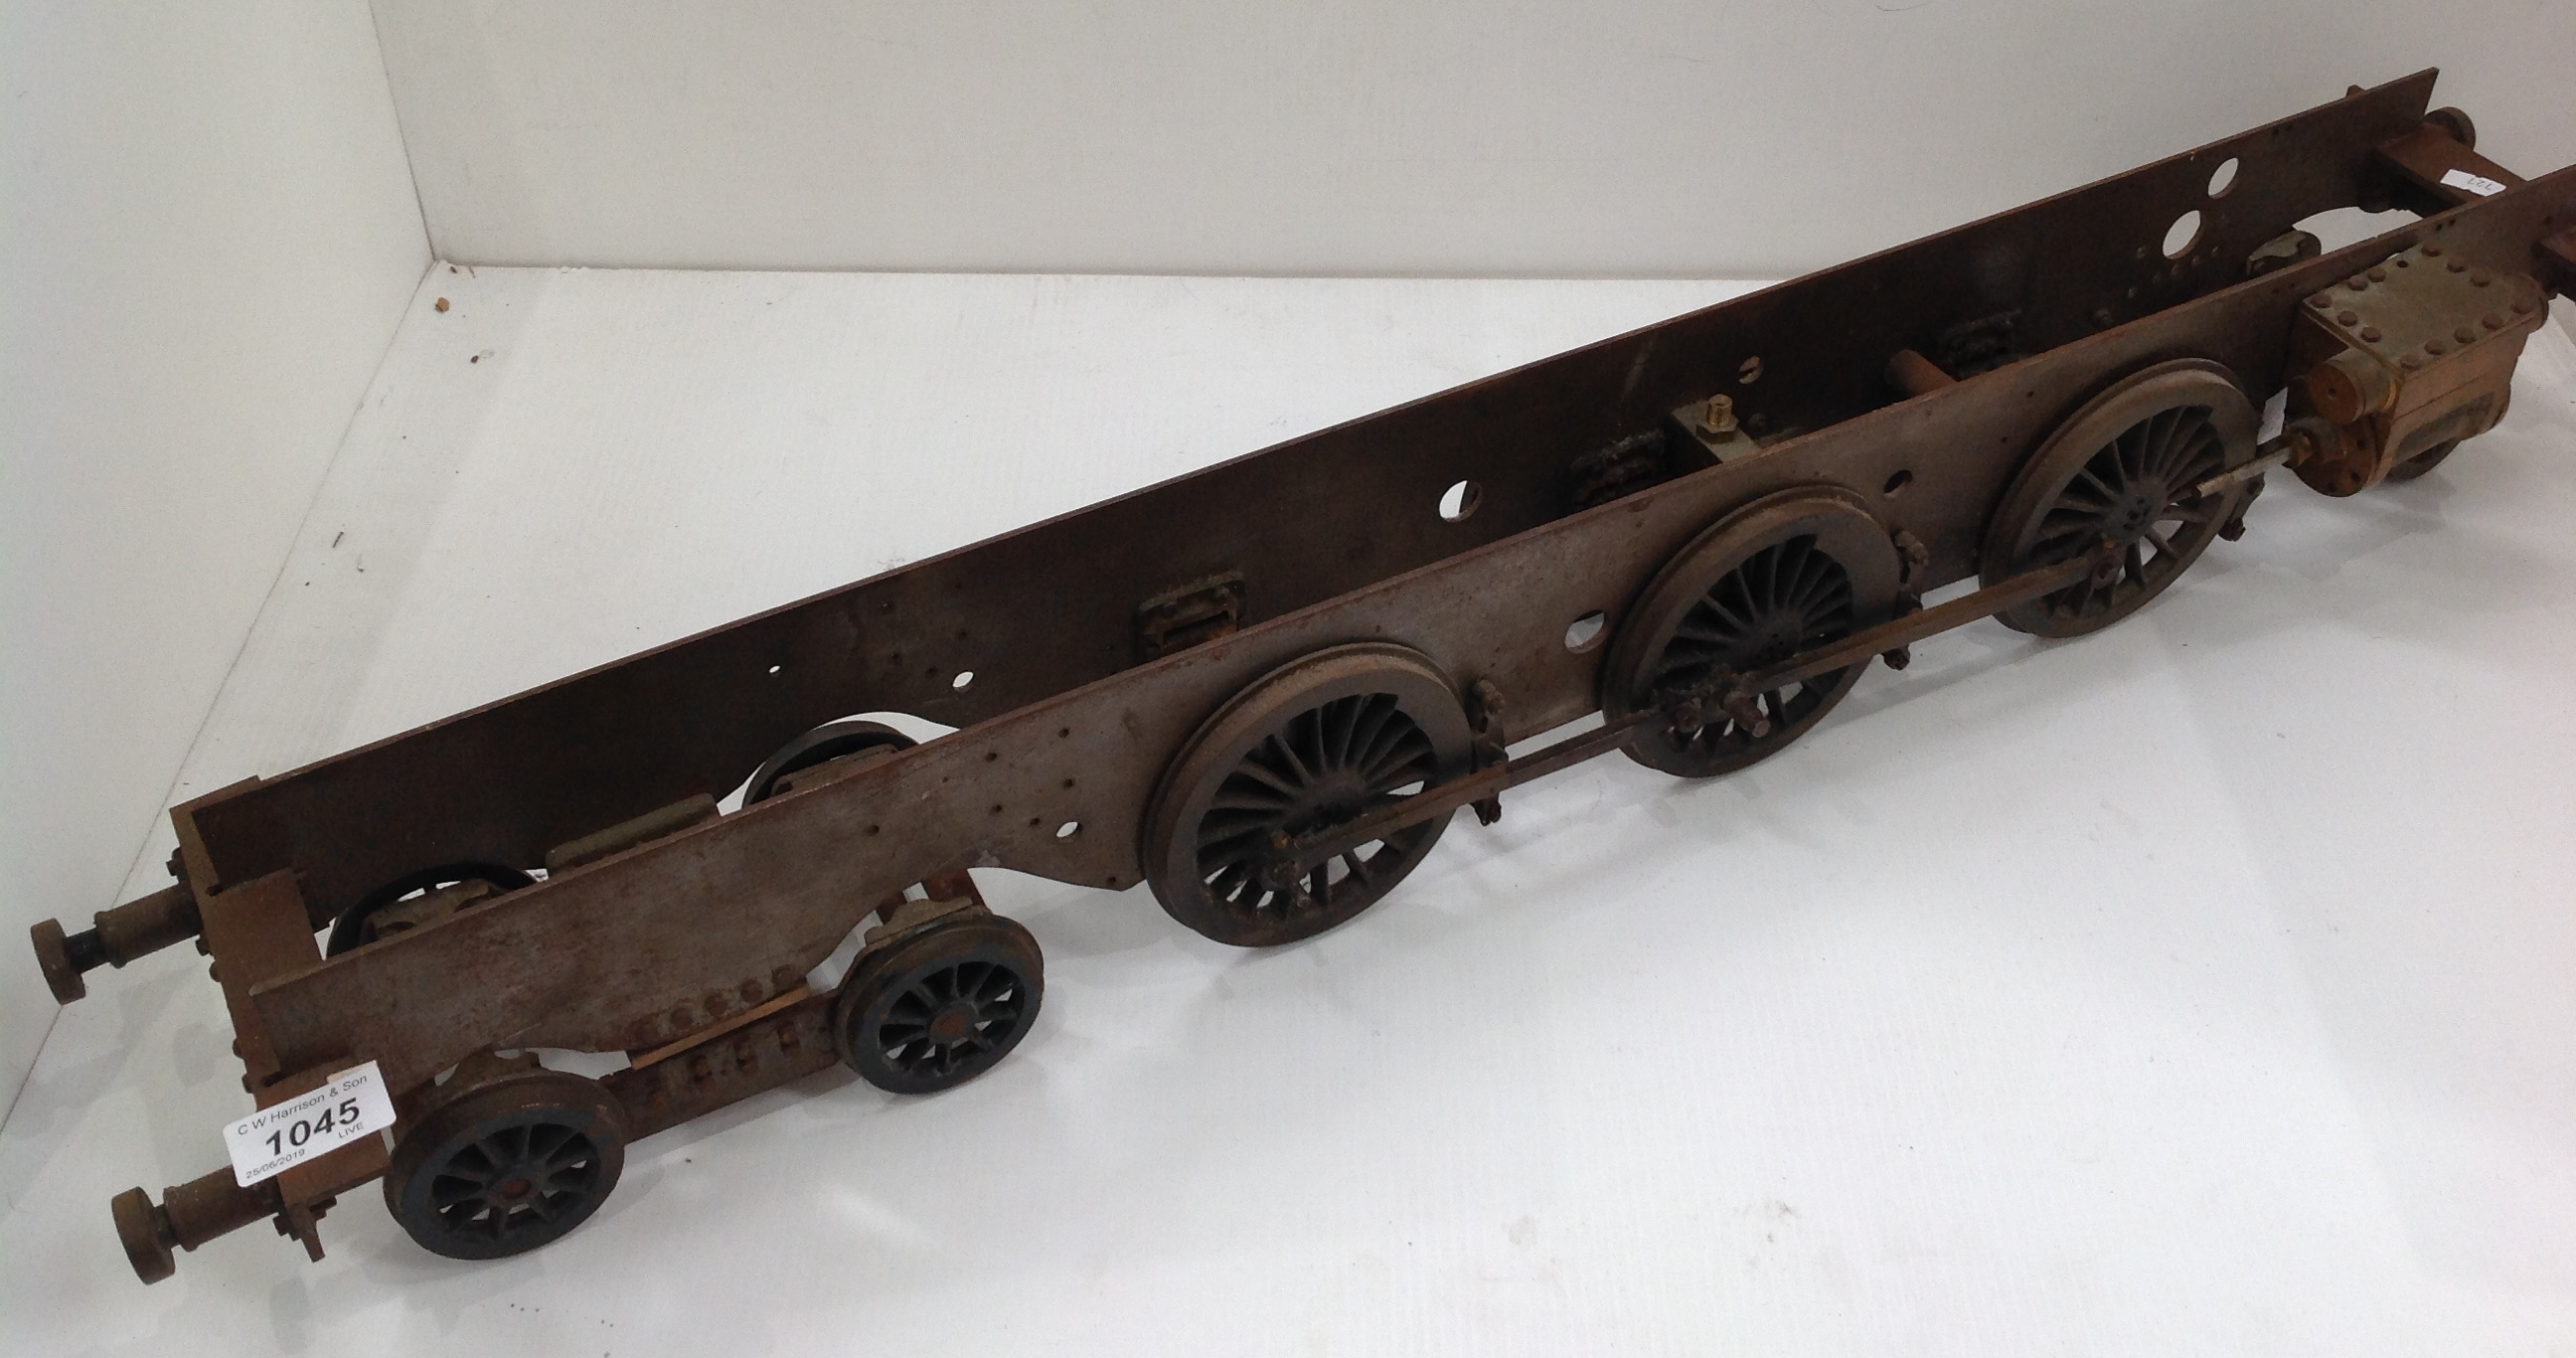 Lot 1045 - A scale model railway steam engine chassis